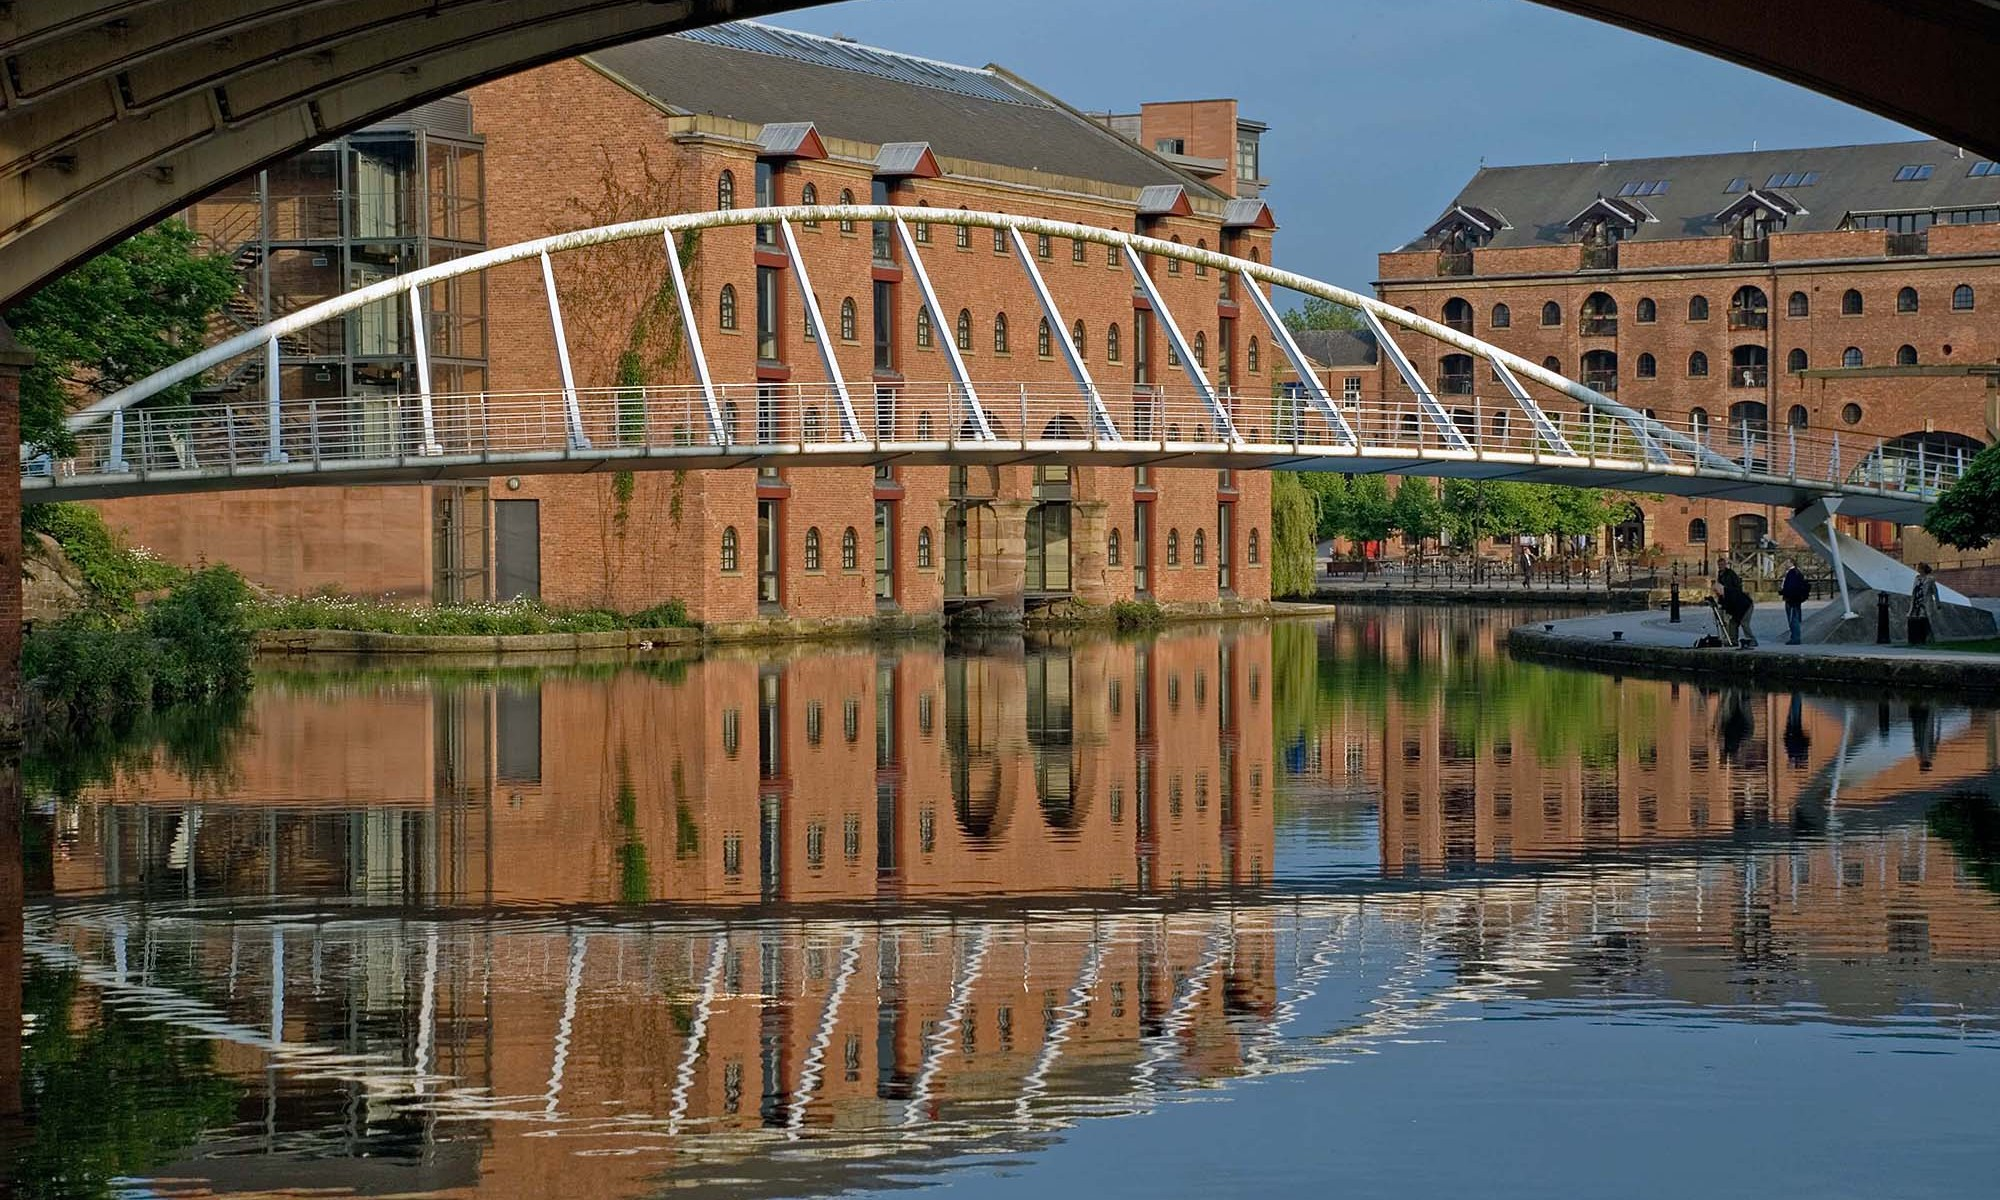 Castlefield foot bridge